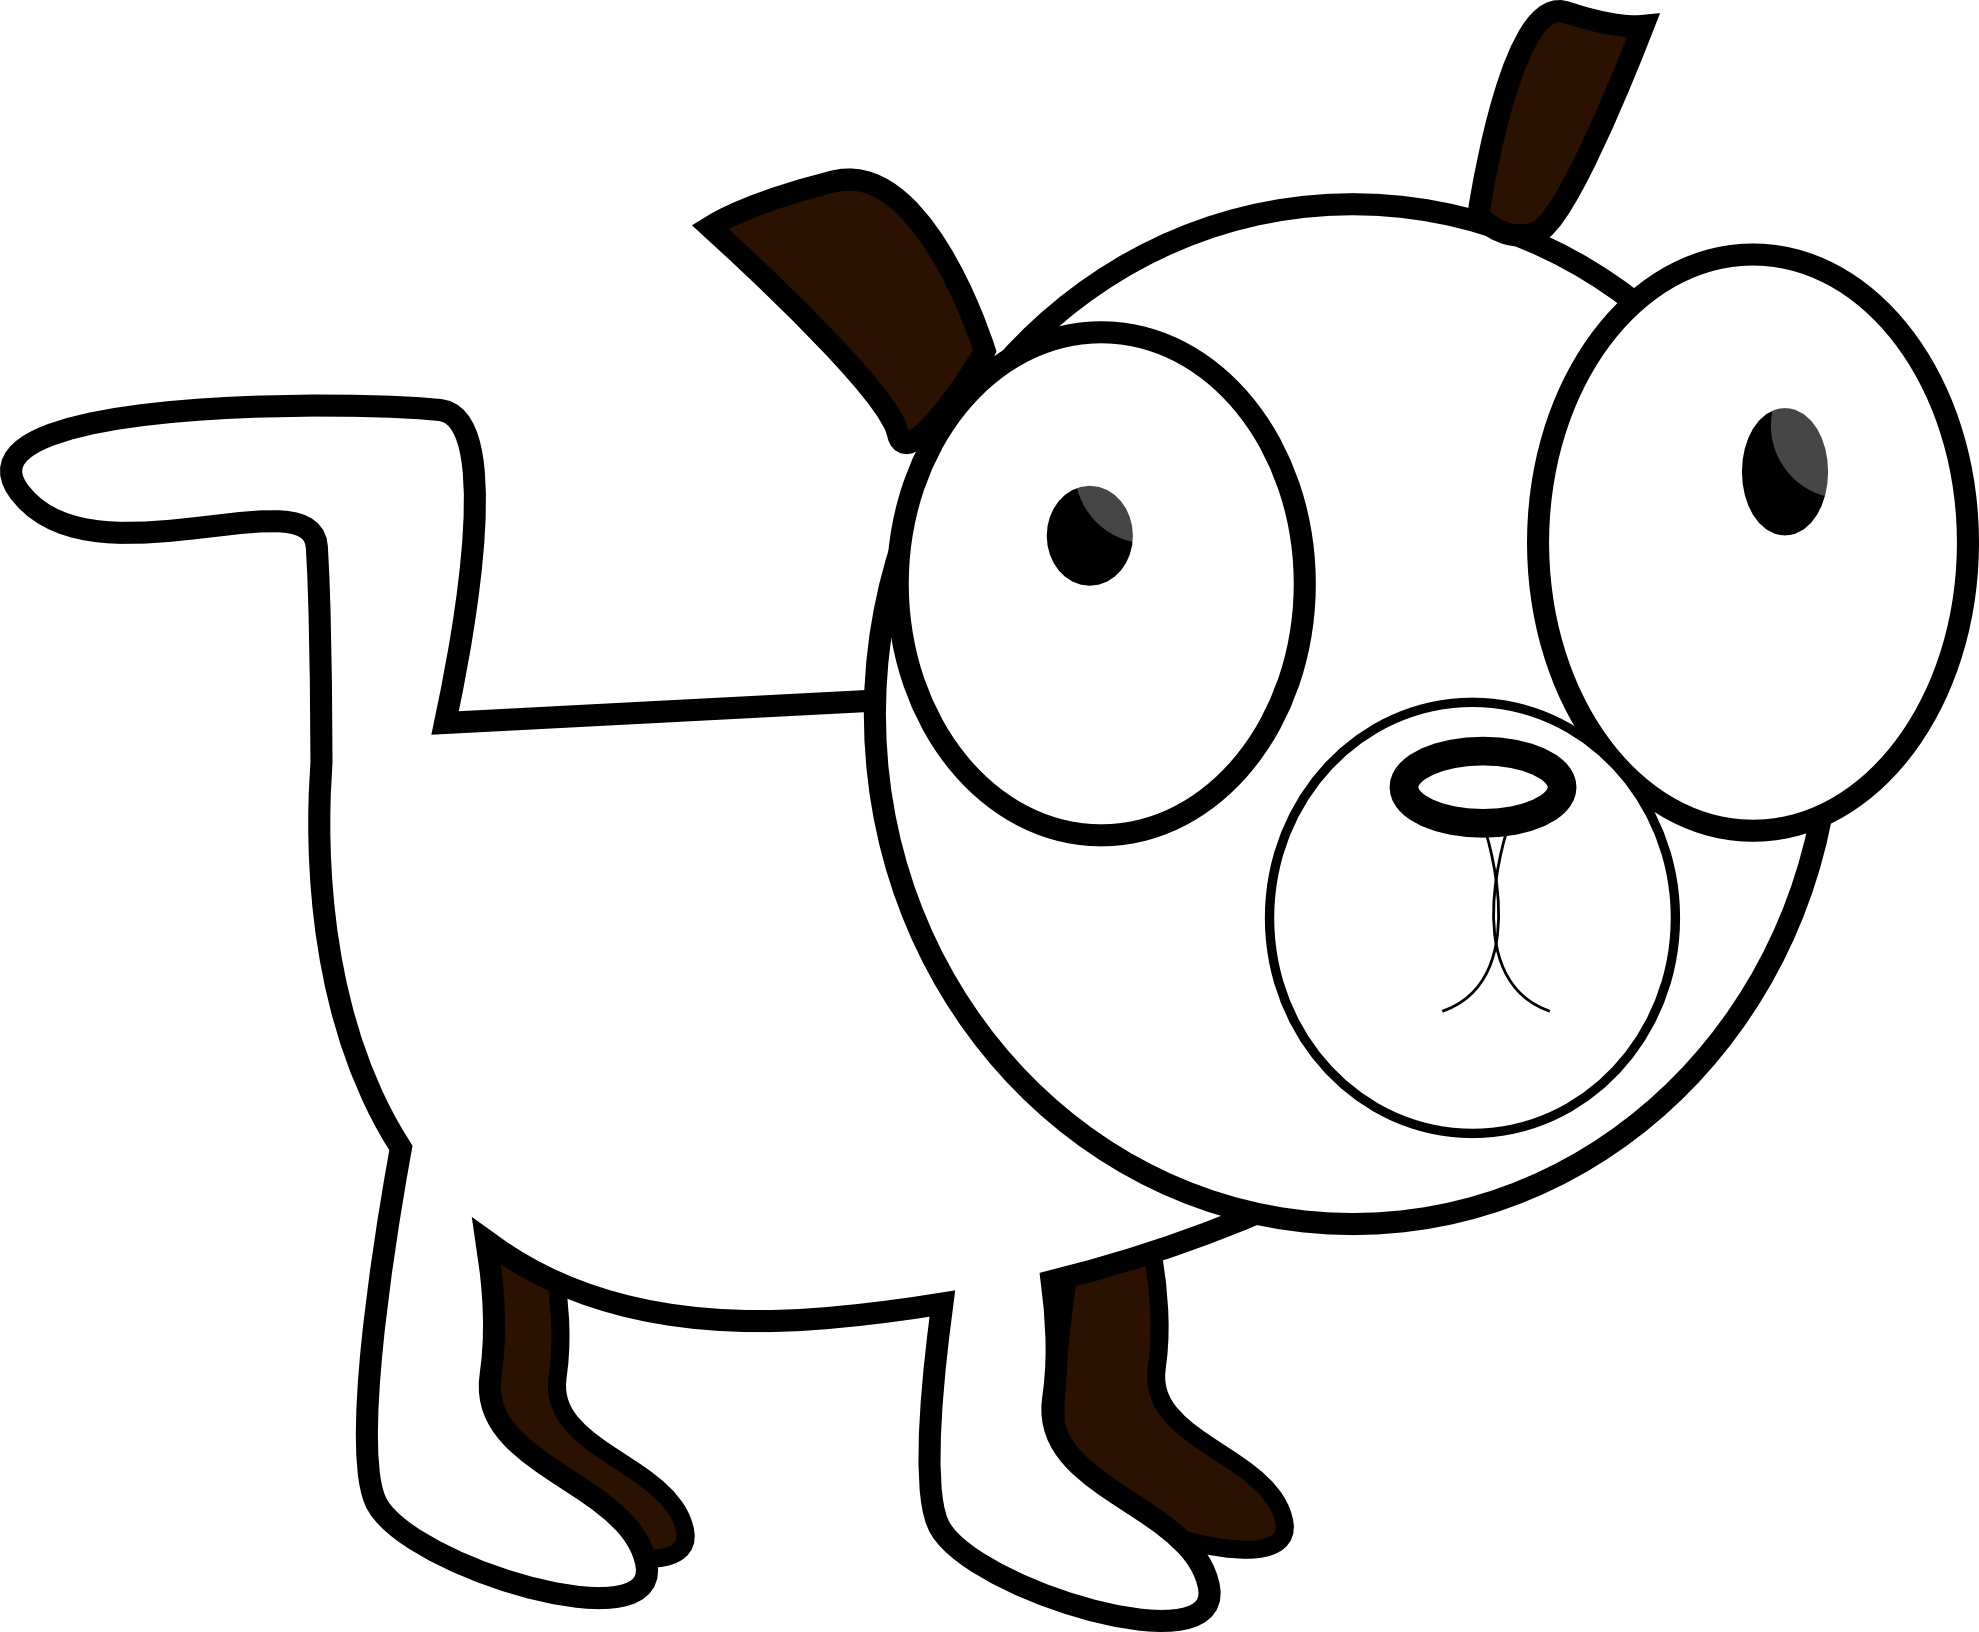 pup png black and white transparent pup black and white png images rh pluspng com